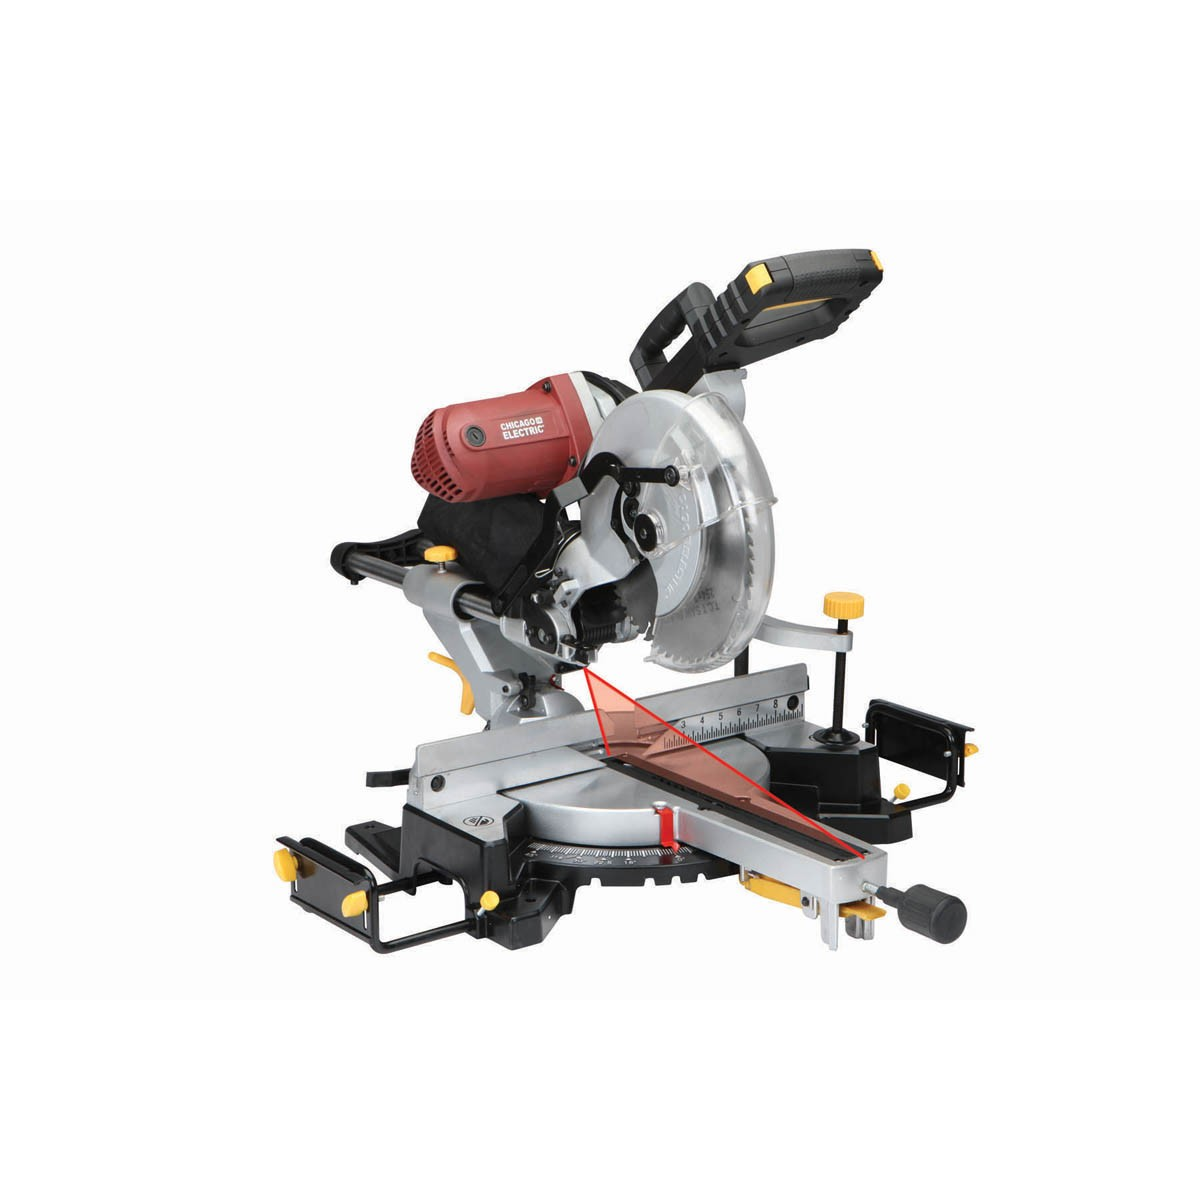 This sliding compound miter saw is designed to make smooth, accurate cuts in larger work pieces - up to 12 inches wide. Powerful 15 amp motor.